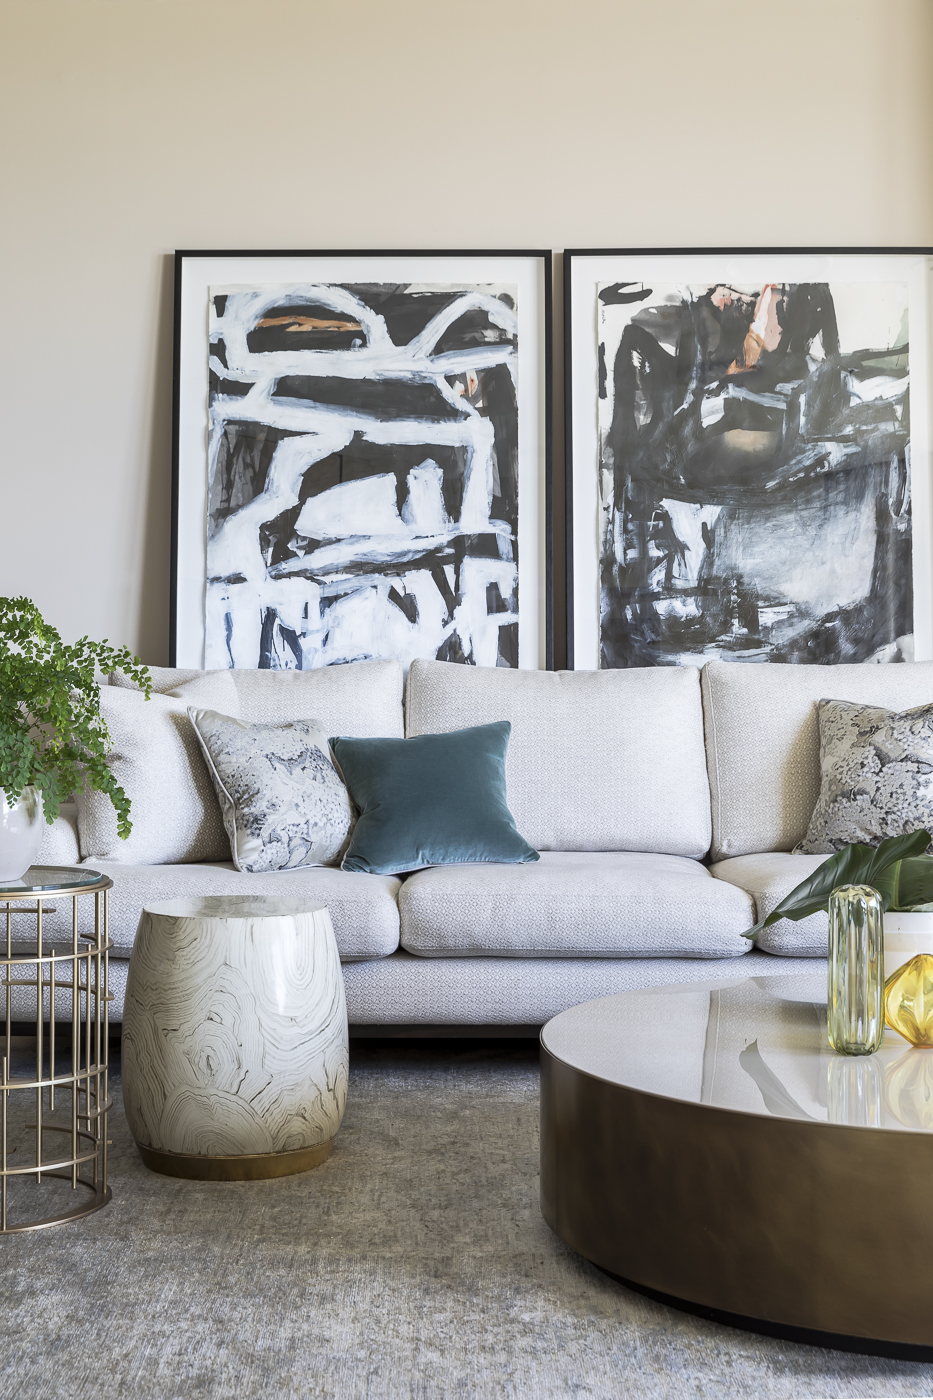 Artwork by Antonia Perricone Mrljak from Becker Minty as seen in our    Hunters Hill House    project.